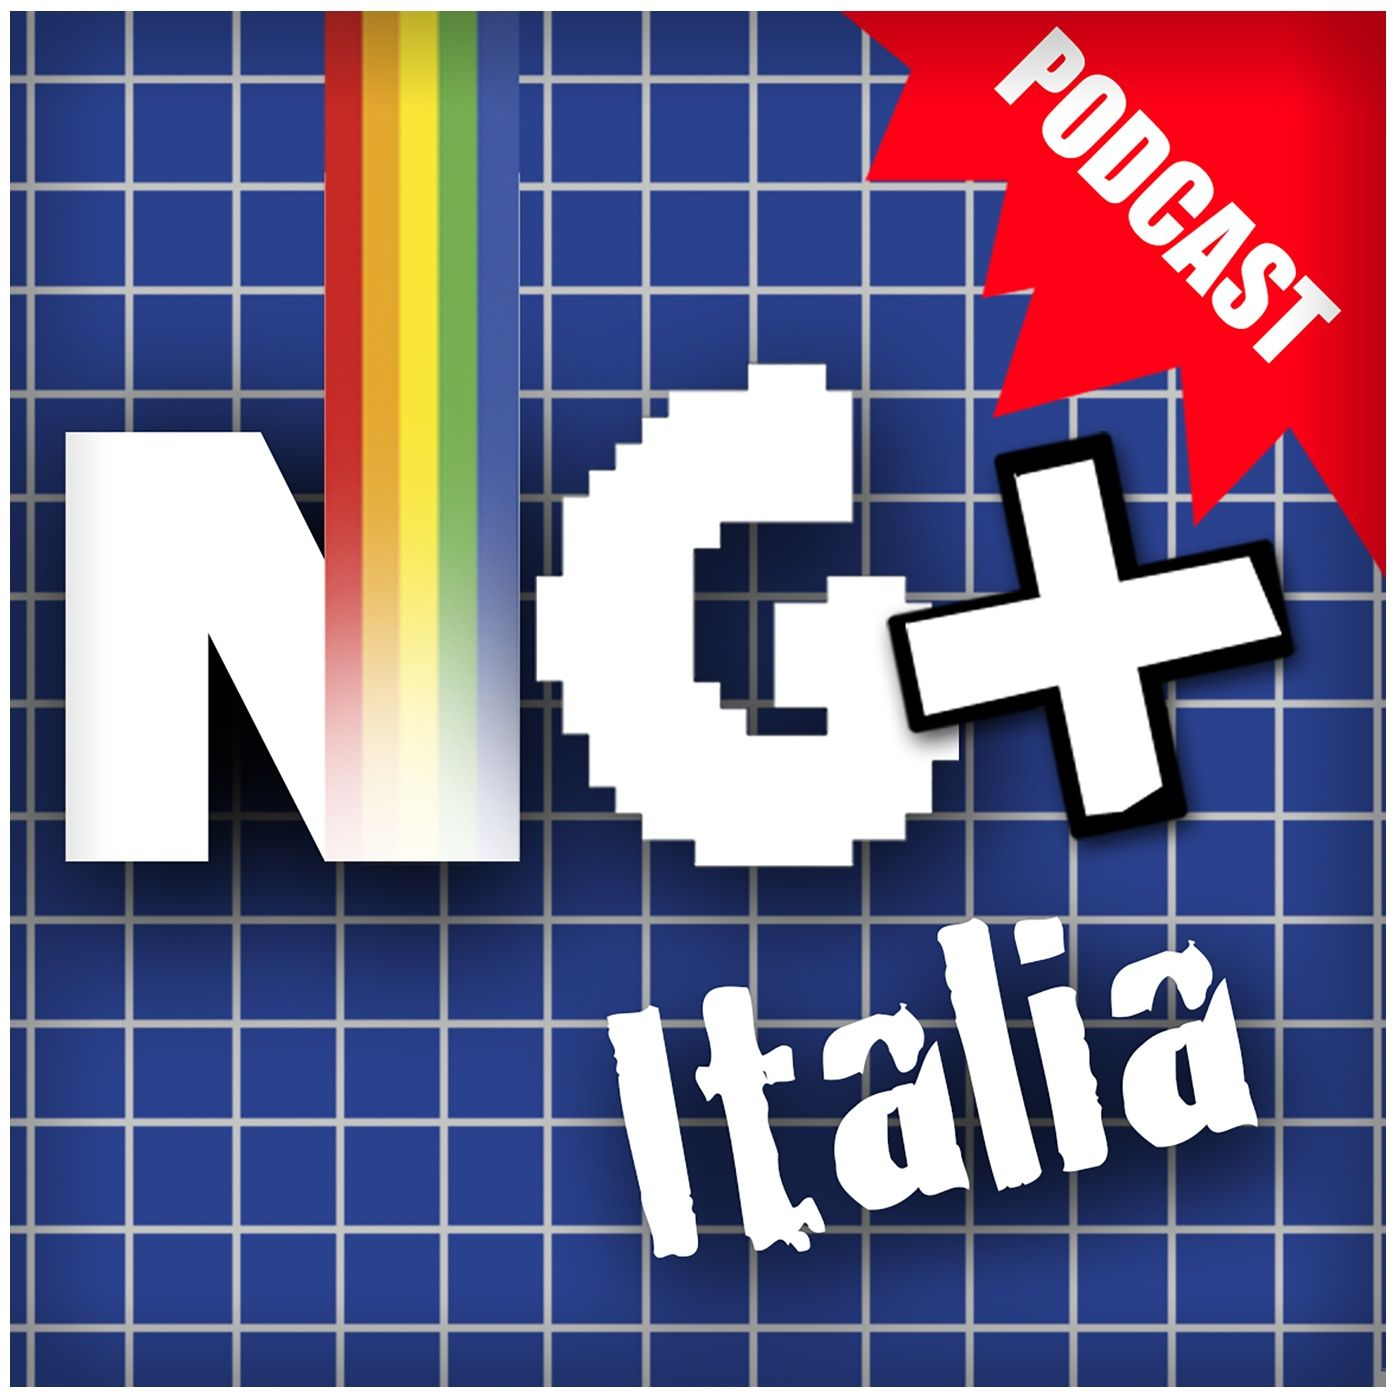 NG+Italia - New Game Plus Italia